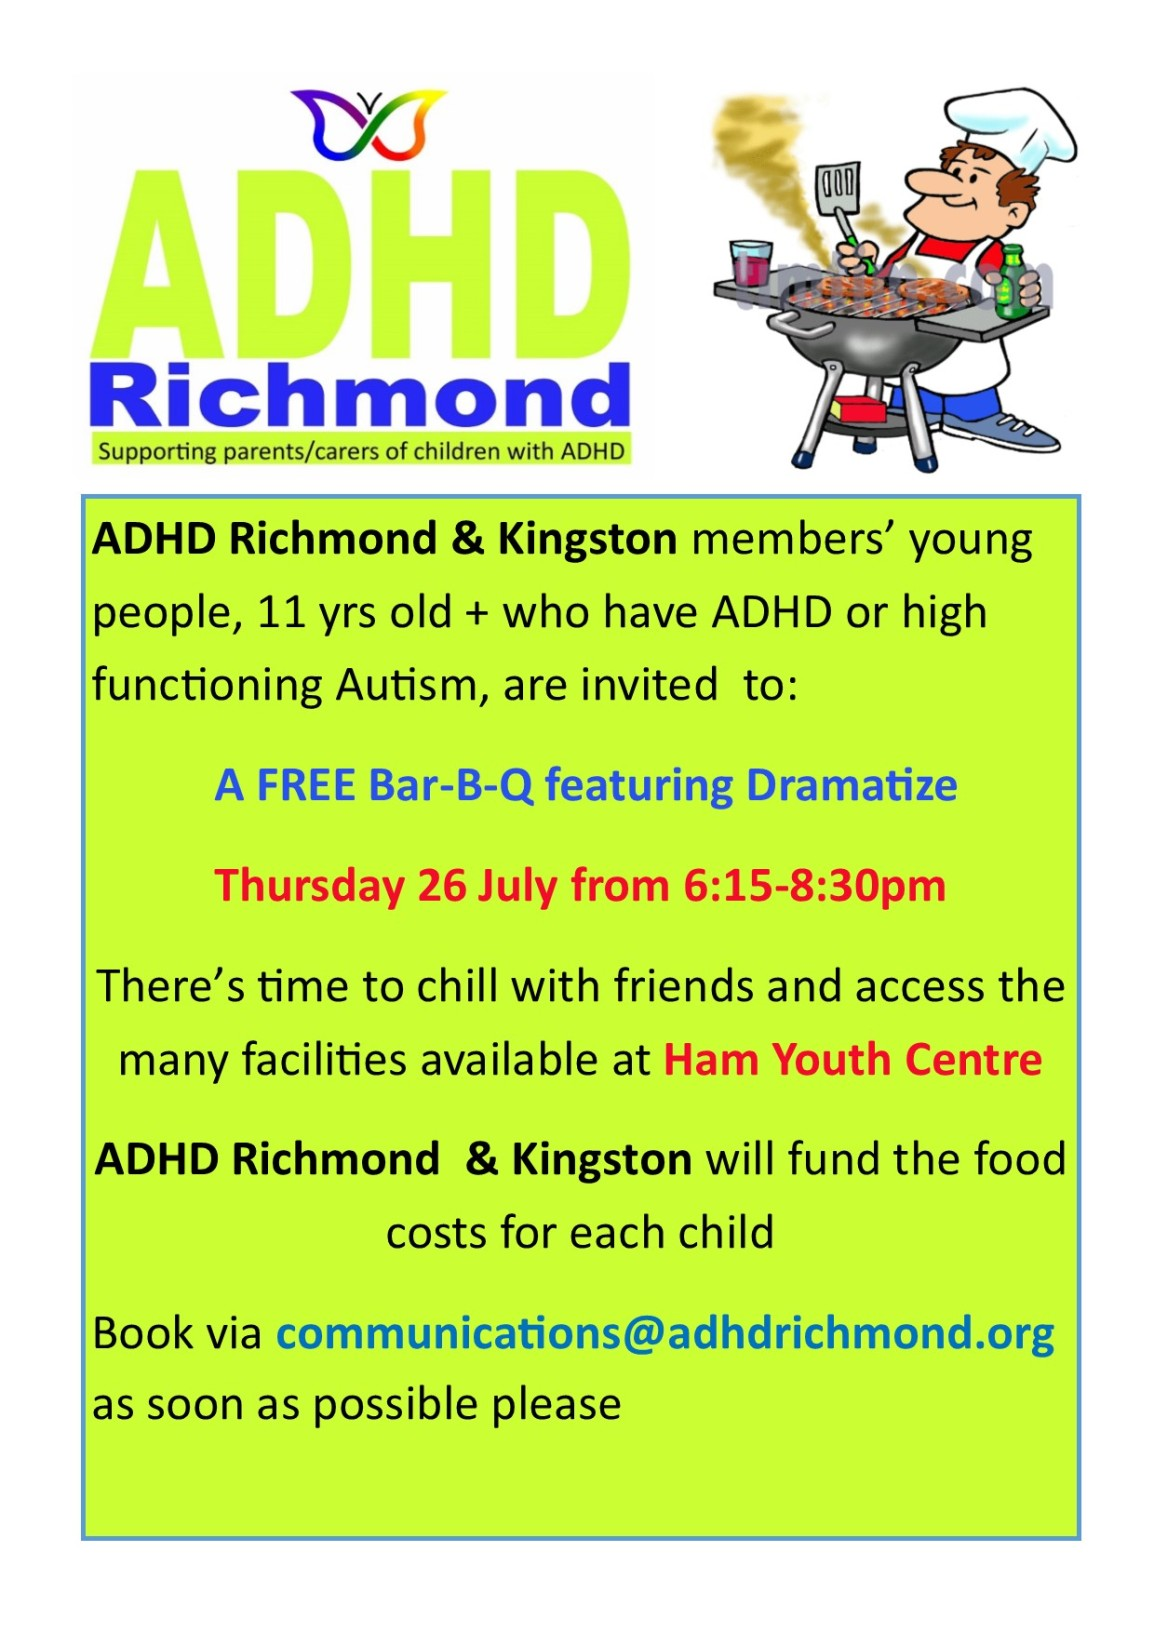 Free BBQ for #ADHD Richmond & Kingston members' 11yrs+ kids on Thurs 26 July. Book now with communications@adhdrichmond.org